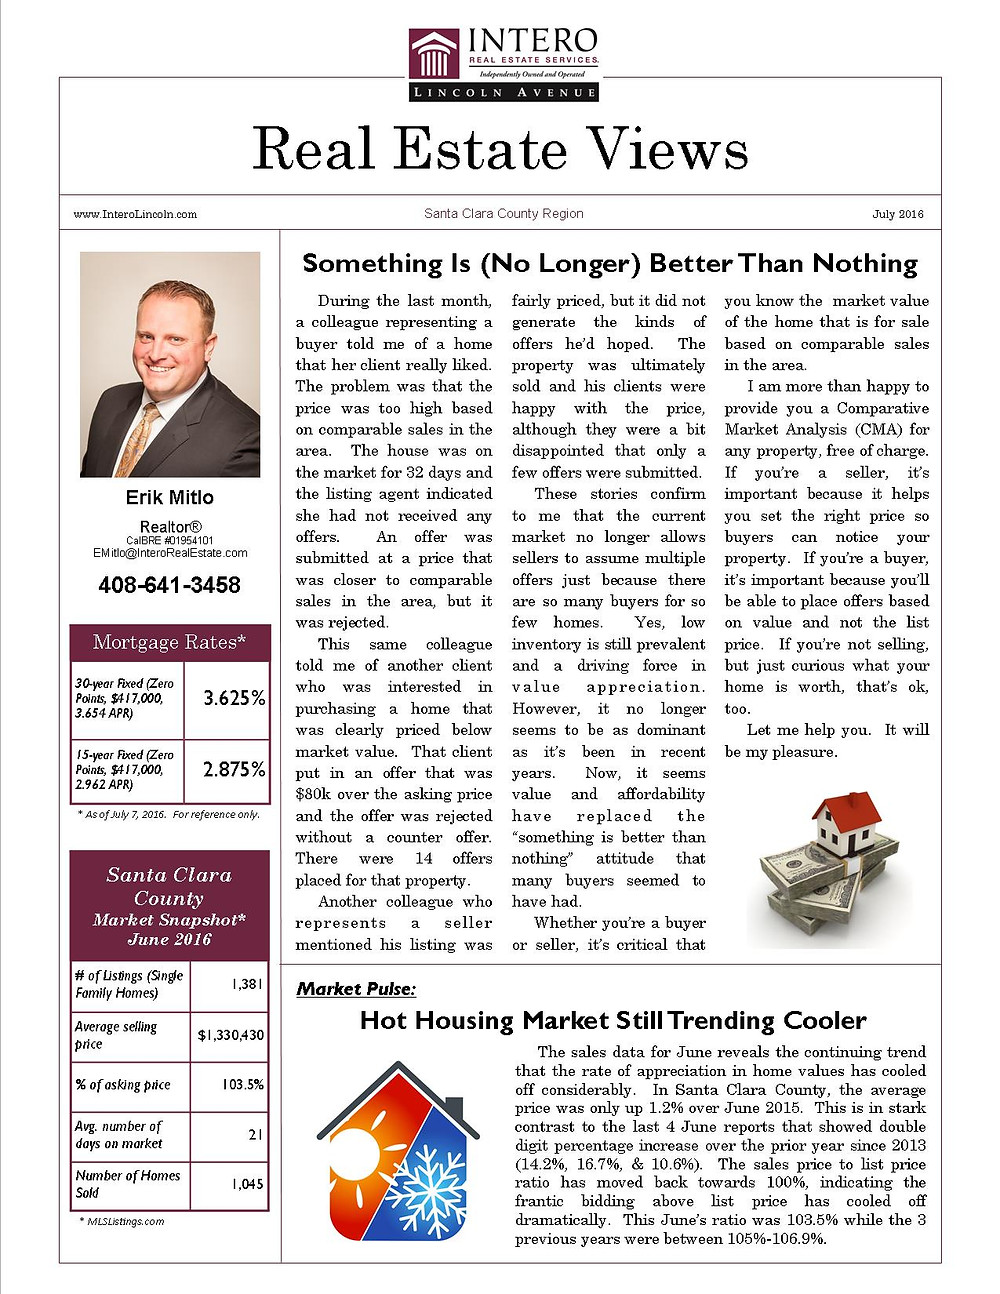 """During the last month, a colleague representing a buyer told me of a home that her client really liked. The problem was that the price was too high based on comparable sales in the area. The house was on the market for 32 days and the listing agent indicated she had not received any offers. An offer was submitted at a price that was closer to comparable sales in the area, but it was rejected.  This same colleague told me of another client who was interested in purchasing a home that was clearly priced below market value. That client put in an offer that was $80k over the asking price and the offer was rejected without a counter offer. There were 14 offers placed for that property.  Another colleague who represents a seller mentioned his listing was fairly priced, but it did not generate the kinds of offers he'd hoped. The property was ultimately sold and his clients were happy with the price, although they were a bit disappointed that only a few offers were submitted.  These stories confirm to me that the current market no longer allows sellers to assume multiple offers just because there are so many buyers for so few homes. Yes, low inventory is still prevalent and a driving force in value appreciation. However, it no longer seems to be as dominant as it's been in recent years. Now, it seems value and affordability have replaced the """"something is better than nothing"""" attitude that many buyers seemed to have had.  Whether you're a buyer or seller, it's critical that you know the market value of the home that is for sale based on comparable sales in the area.  I am more than happy to provide you a Comparative Market Analysis (CMA) for any property, free of charge. If you're a seller, it's important because it helps you set the right price so buyers can notice your property. If you're a buyer, it's important because you'll be able to place offers based on value and not the list price. If you're not selling, but just curious what your home is worth, that's ok, too.  Le"""